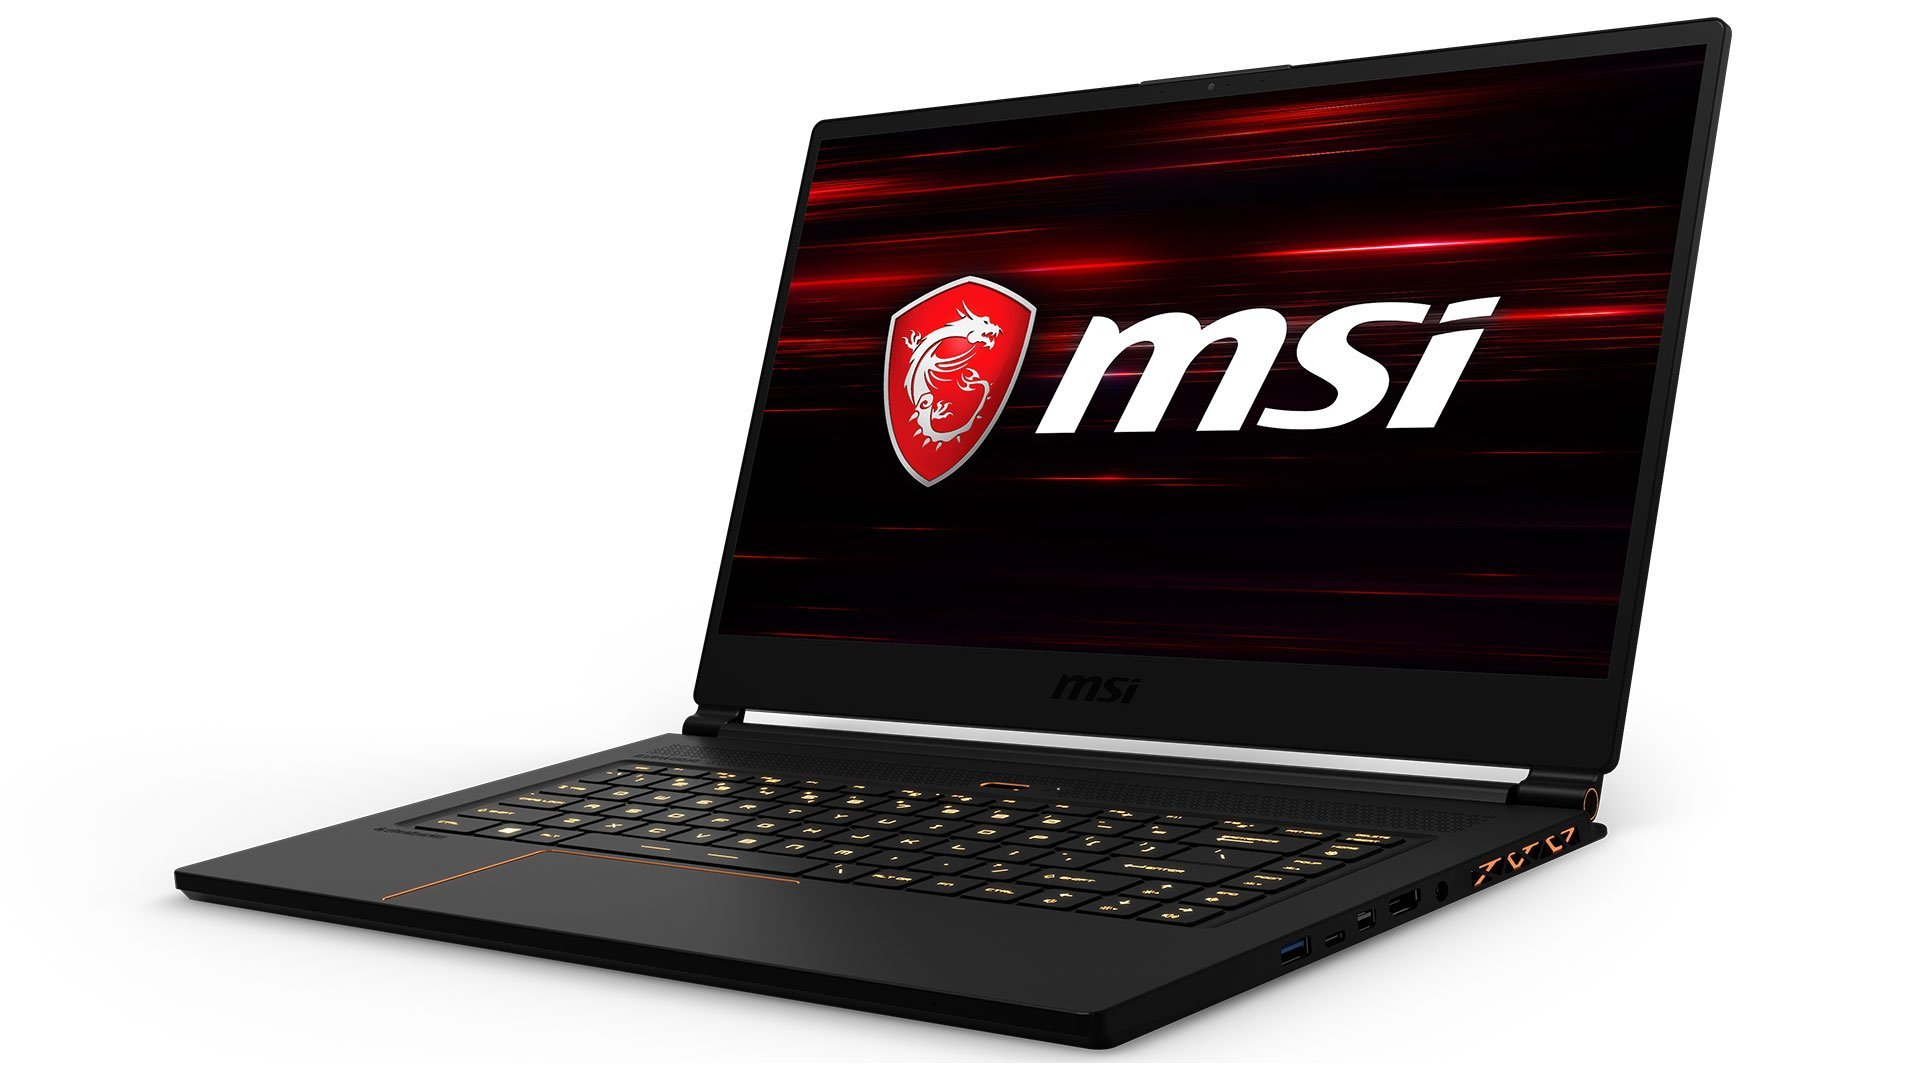 New Gaming Laptops from MSI with Intel 8th Generation Processors 2